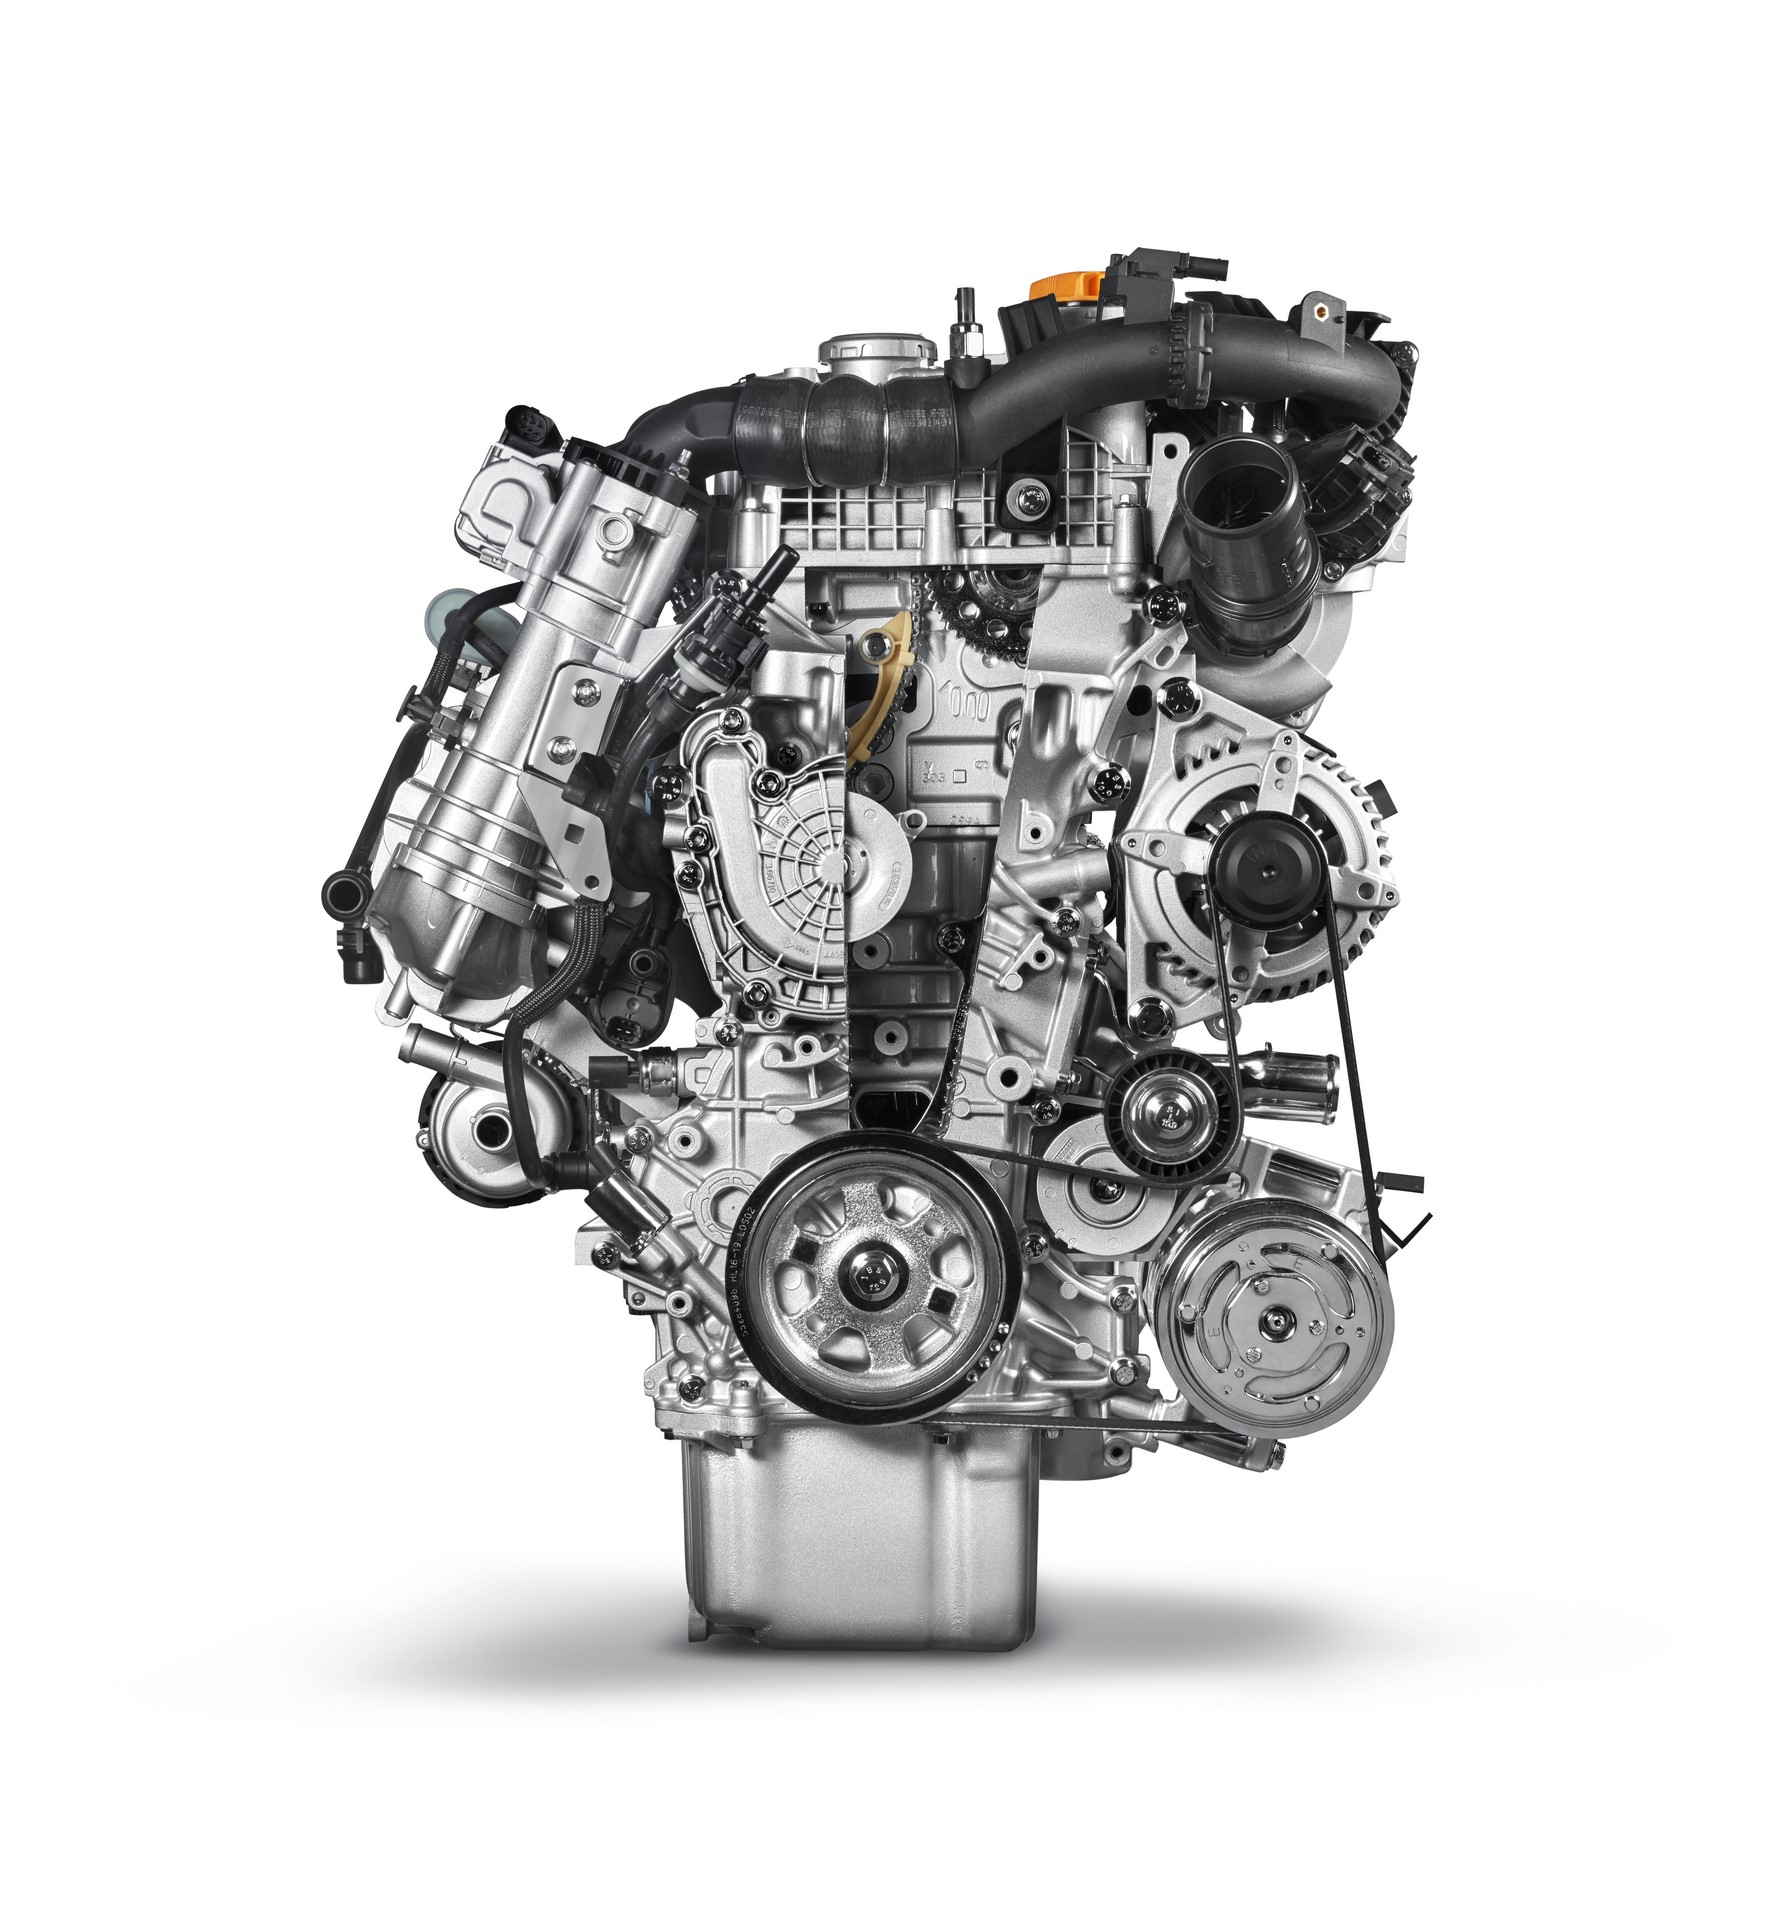 New-13L-Turbo-4-cylinder-150HP_01